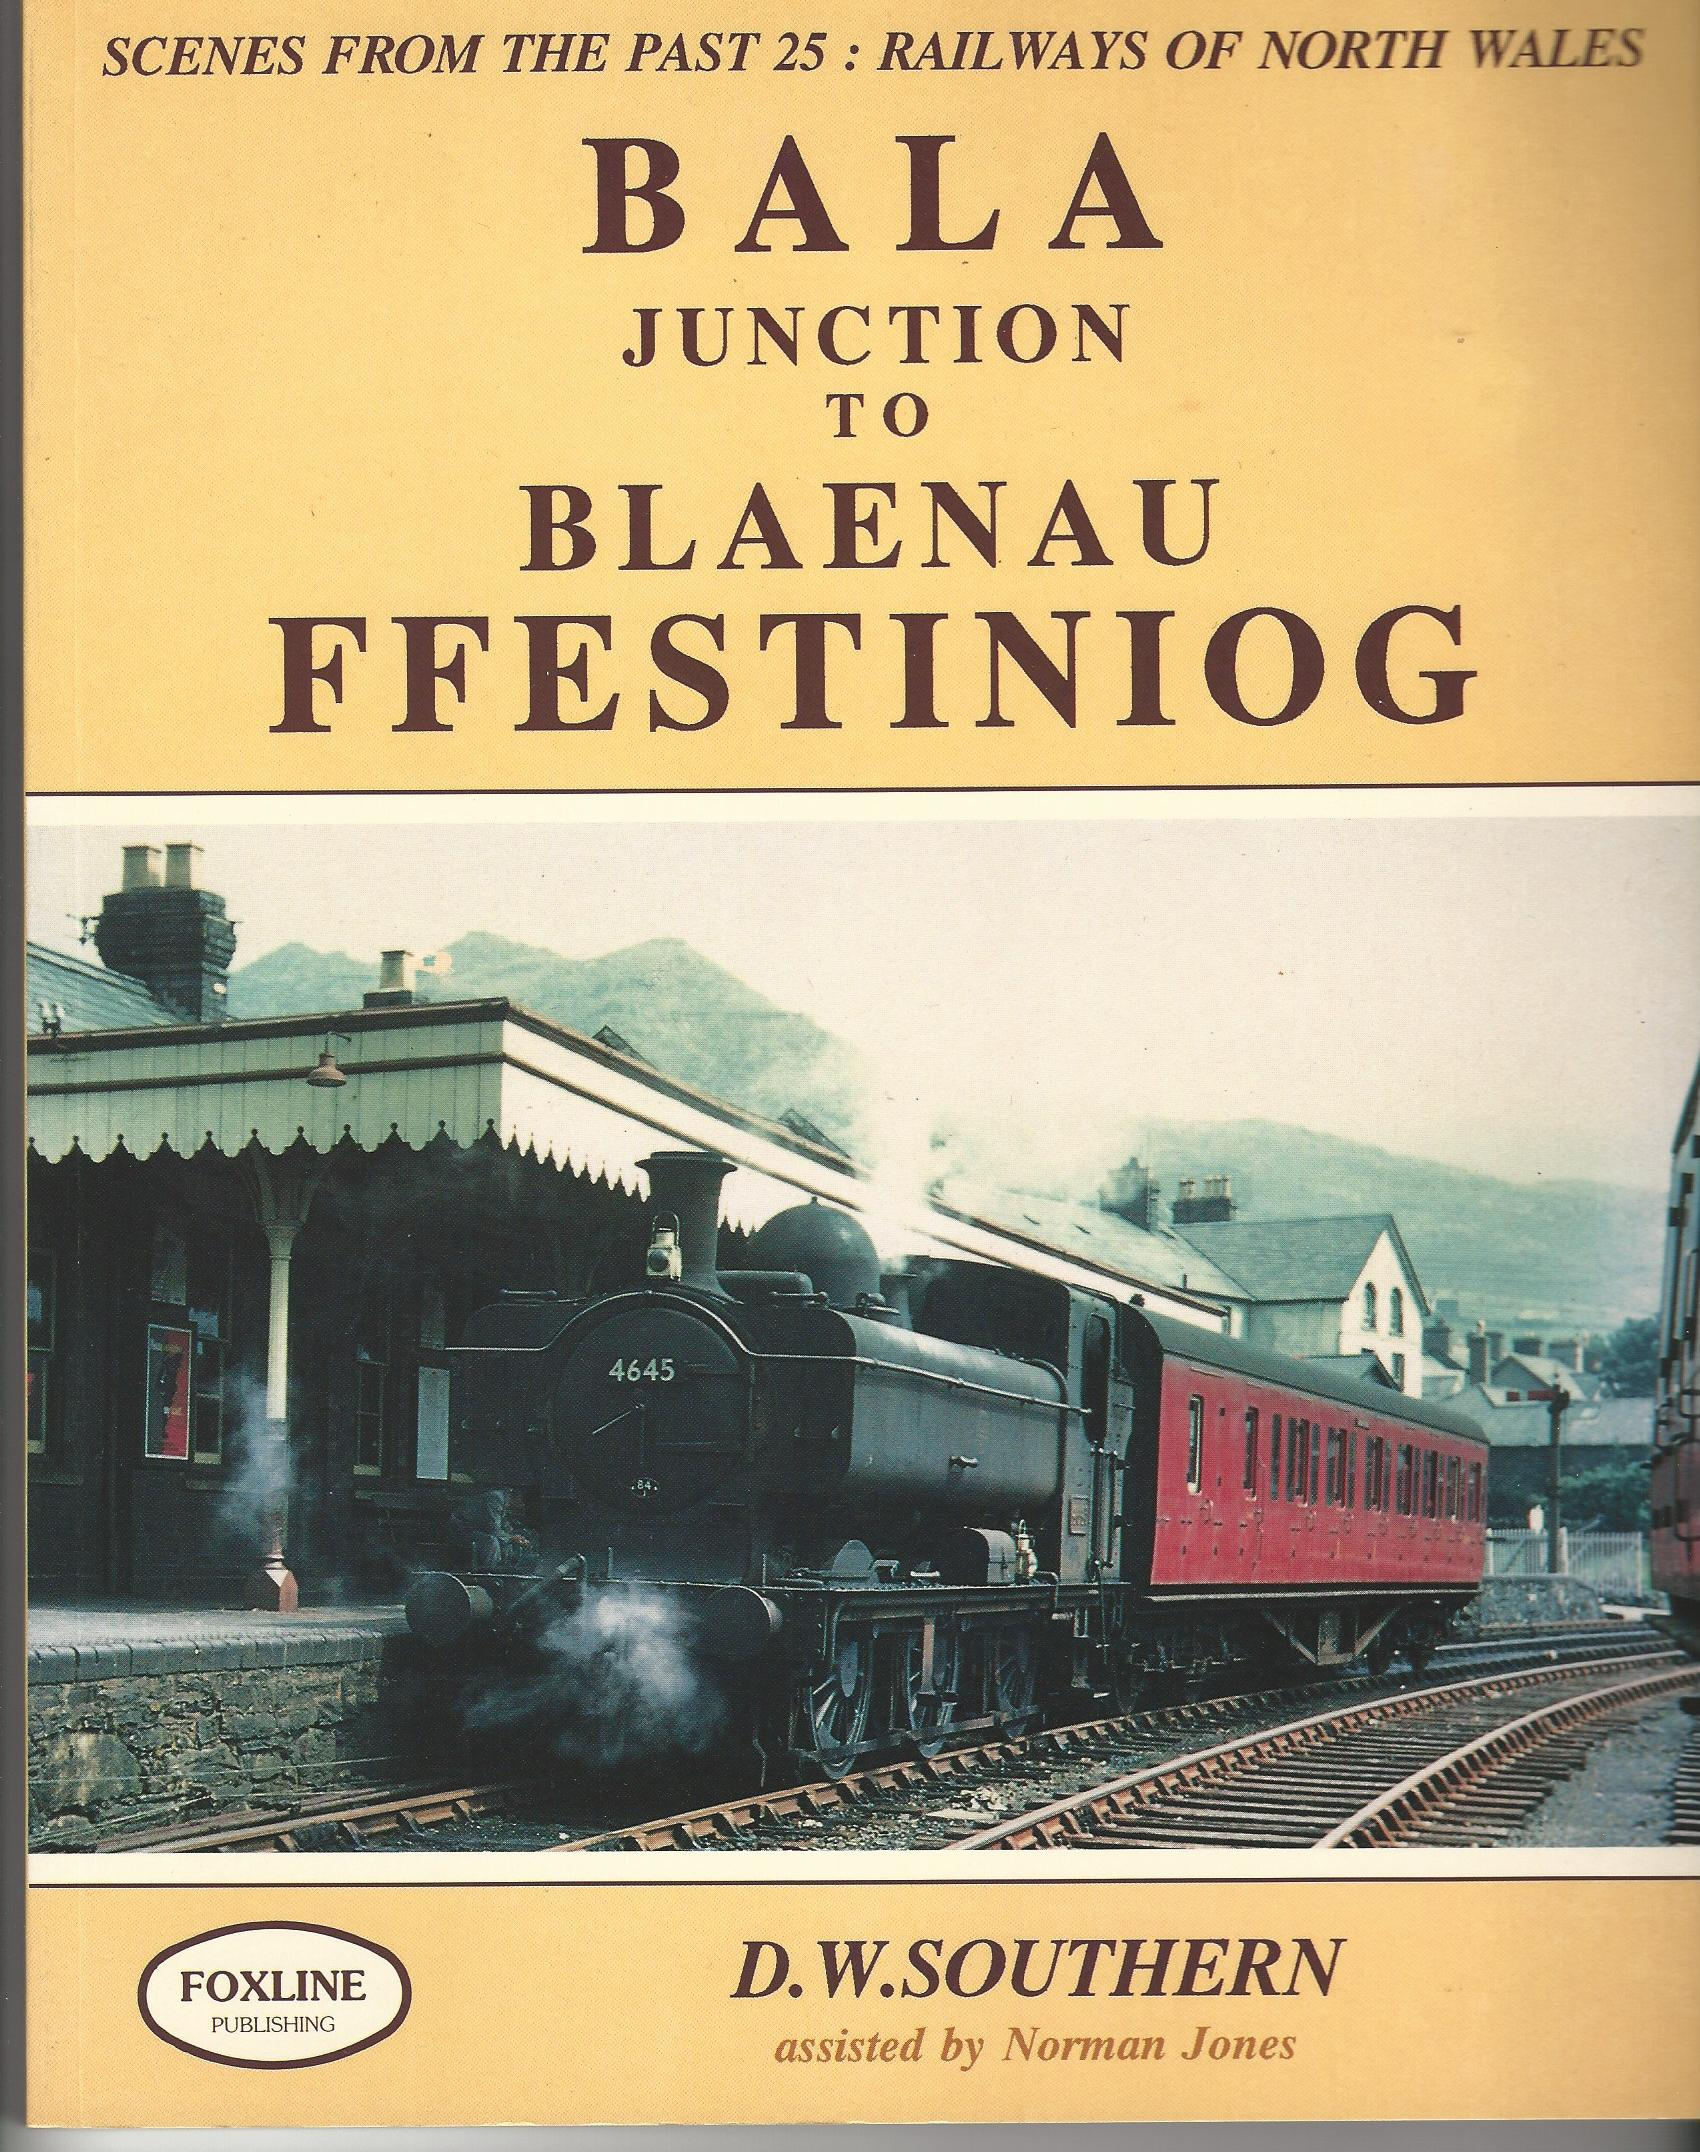 Image for Railways of North Wales: Bala Junction to Blaenau Ffestiniog (Scenes from the Past S.)